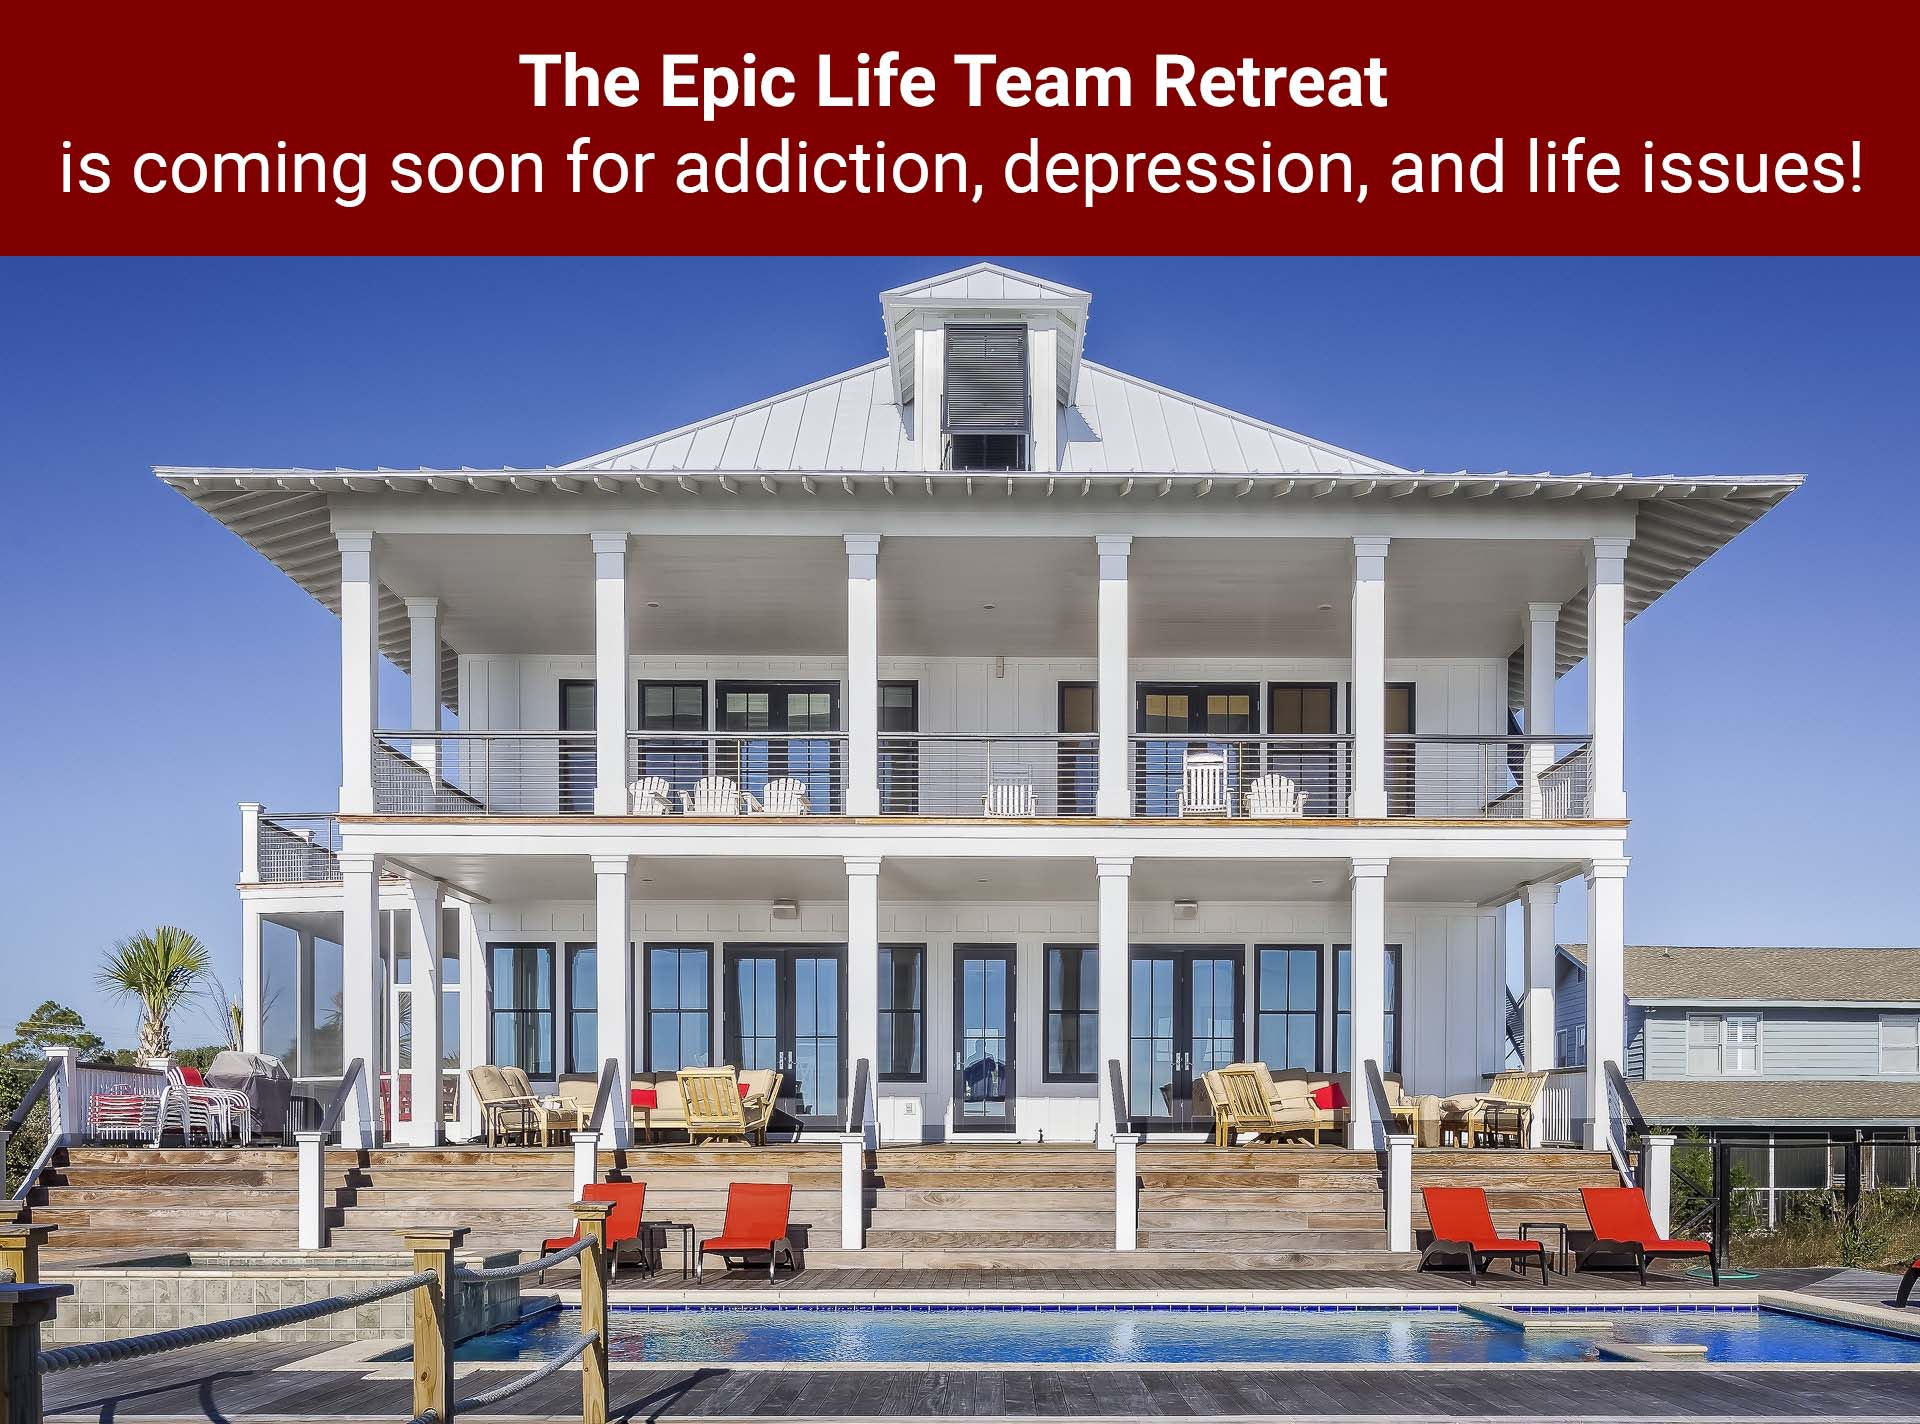 The Epic Life Team Retreat for Addiction, Depression and Life Issues is coming soon!